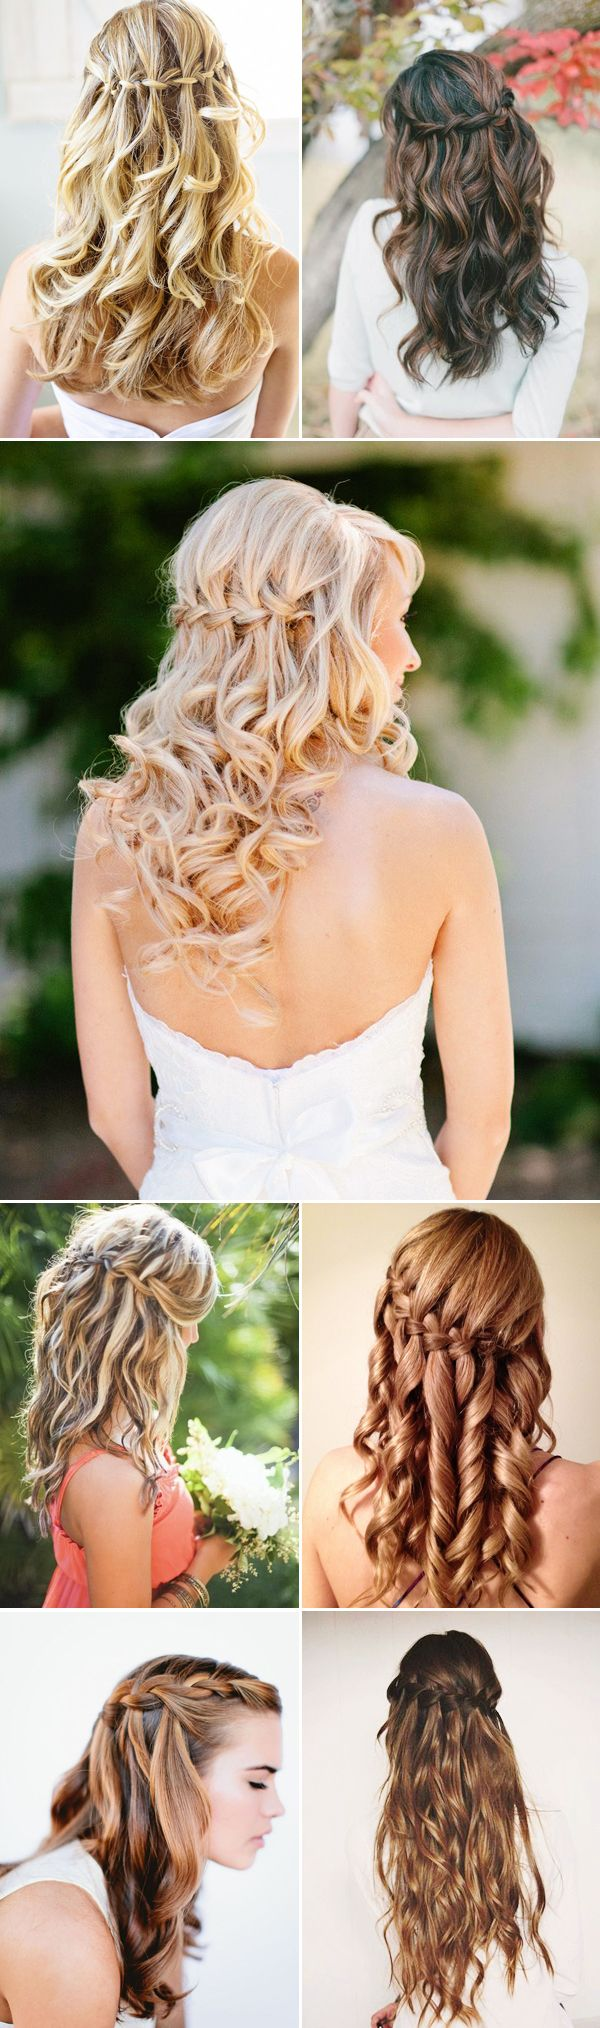 15 stunning waterfall braids - pretty designs